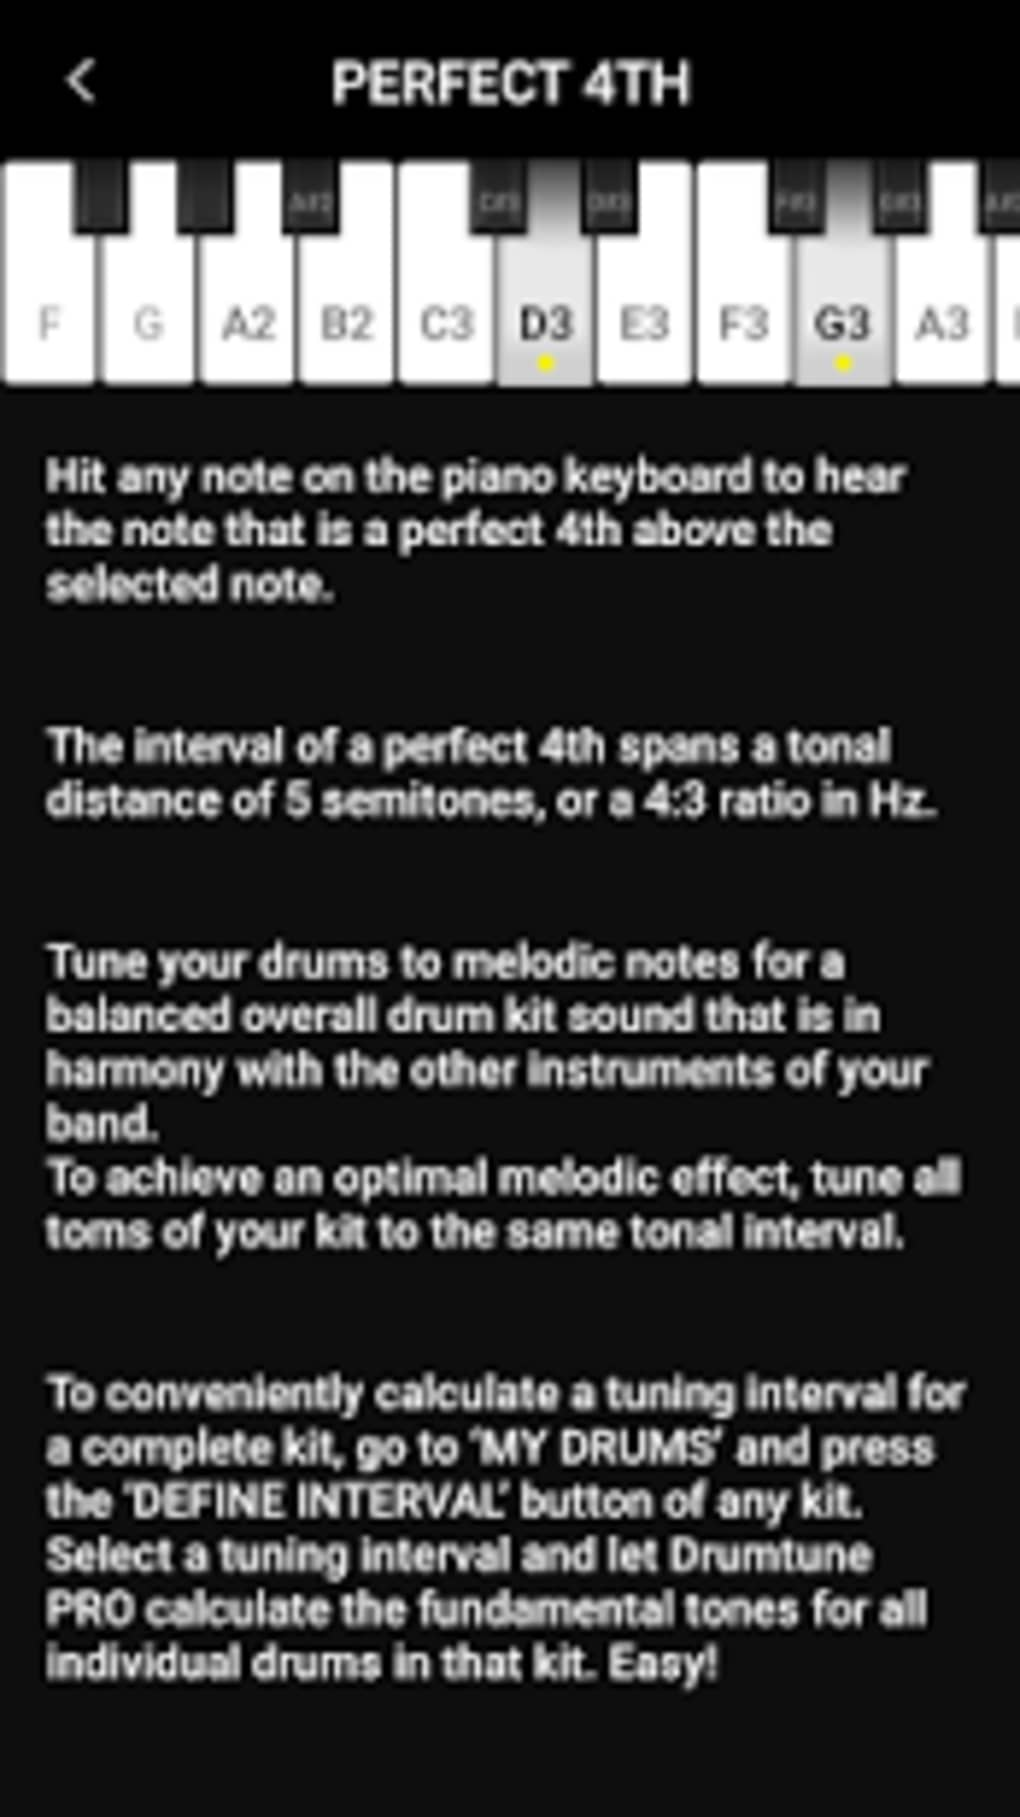 Drumtune PRO | Drum Tuner > Drum tuning made easy